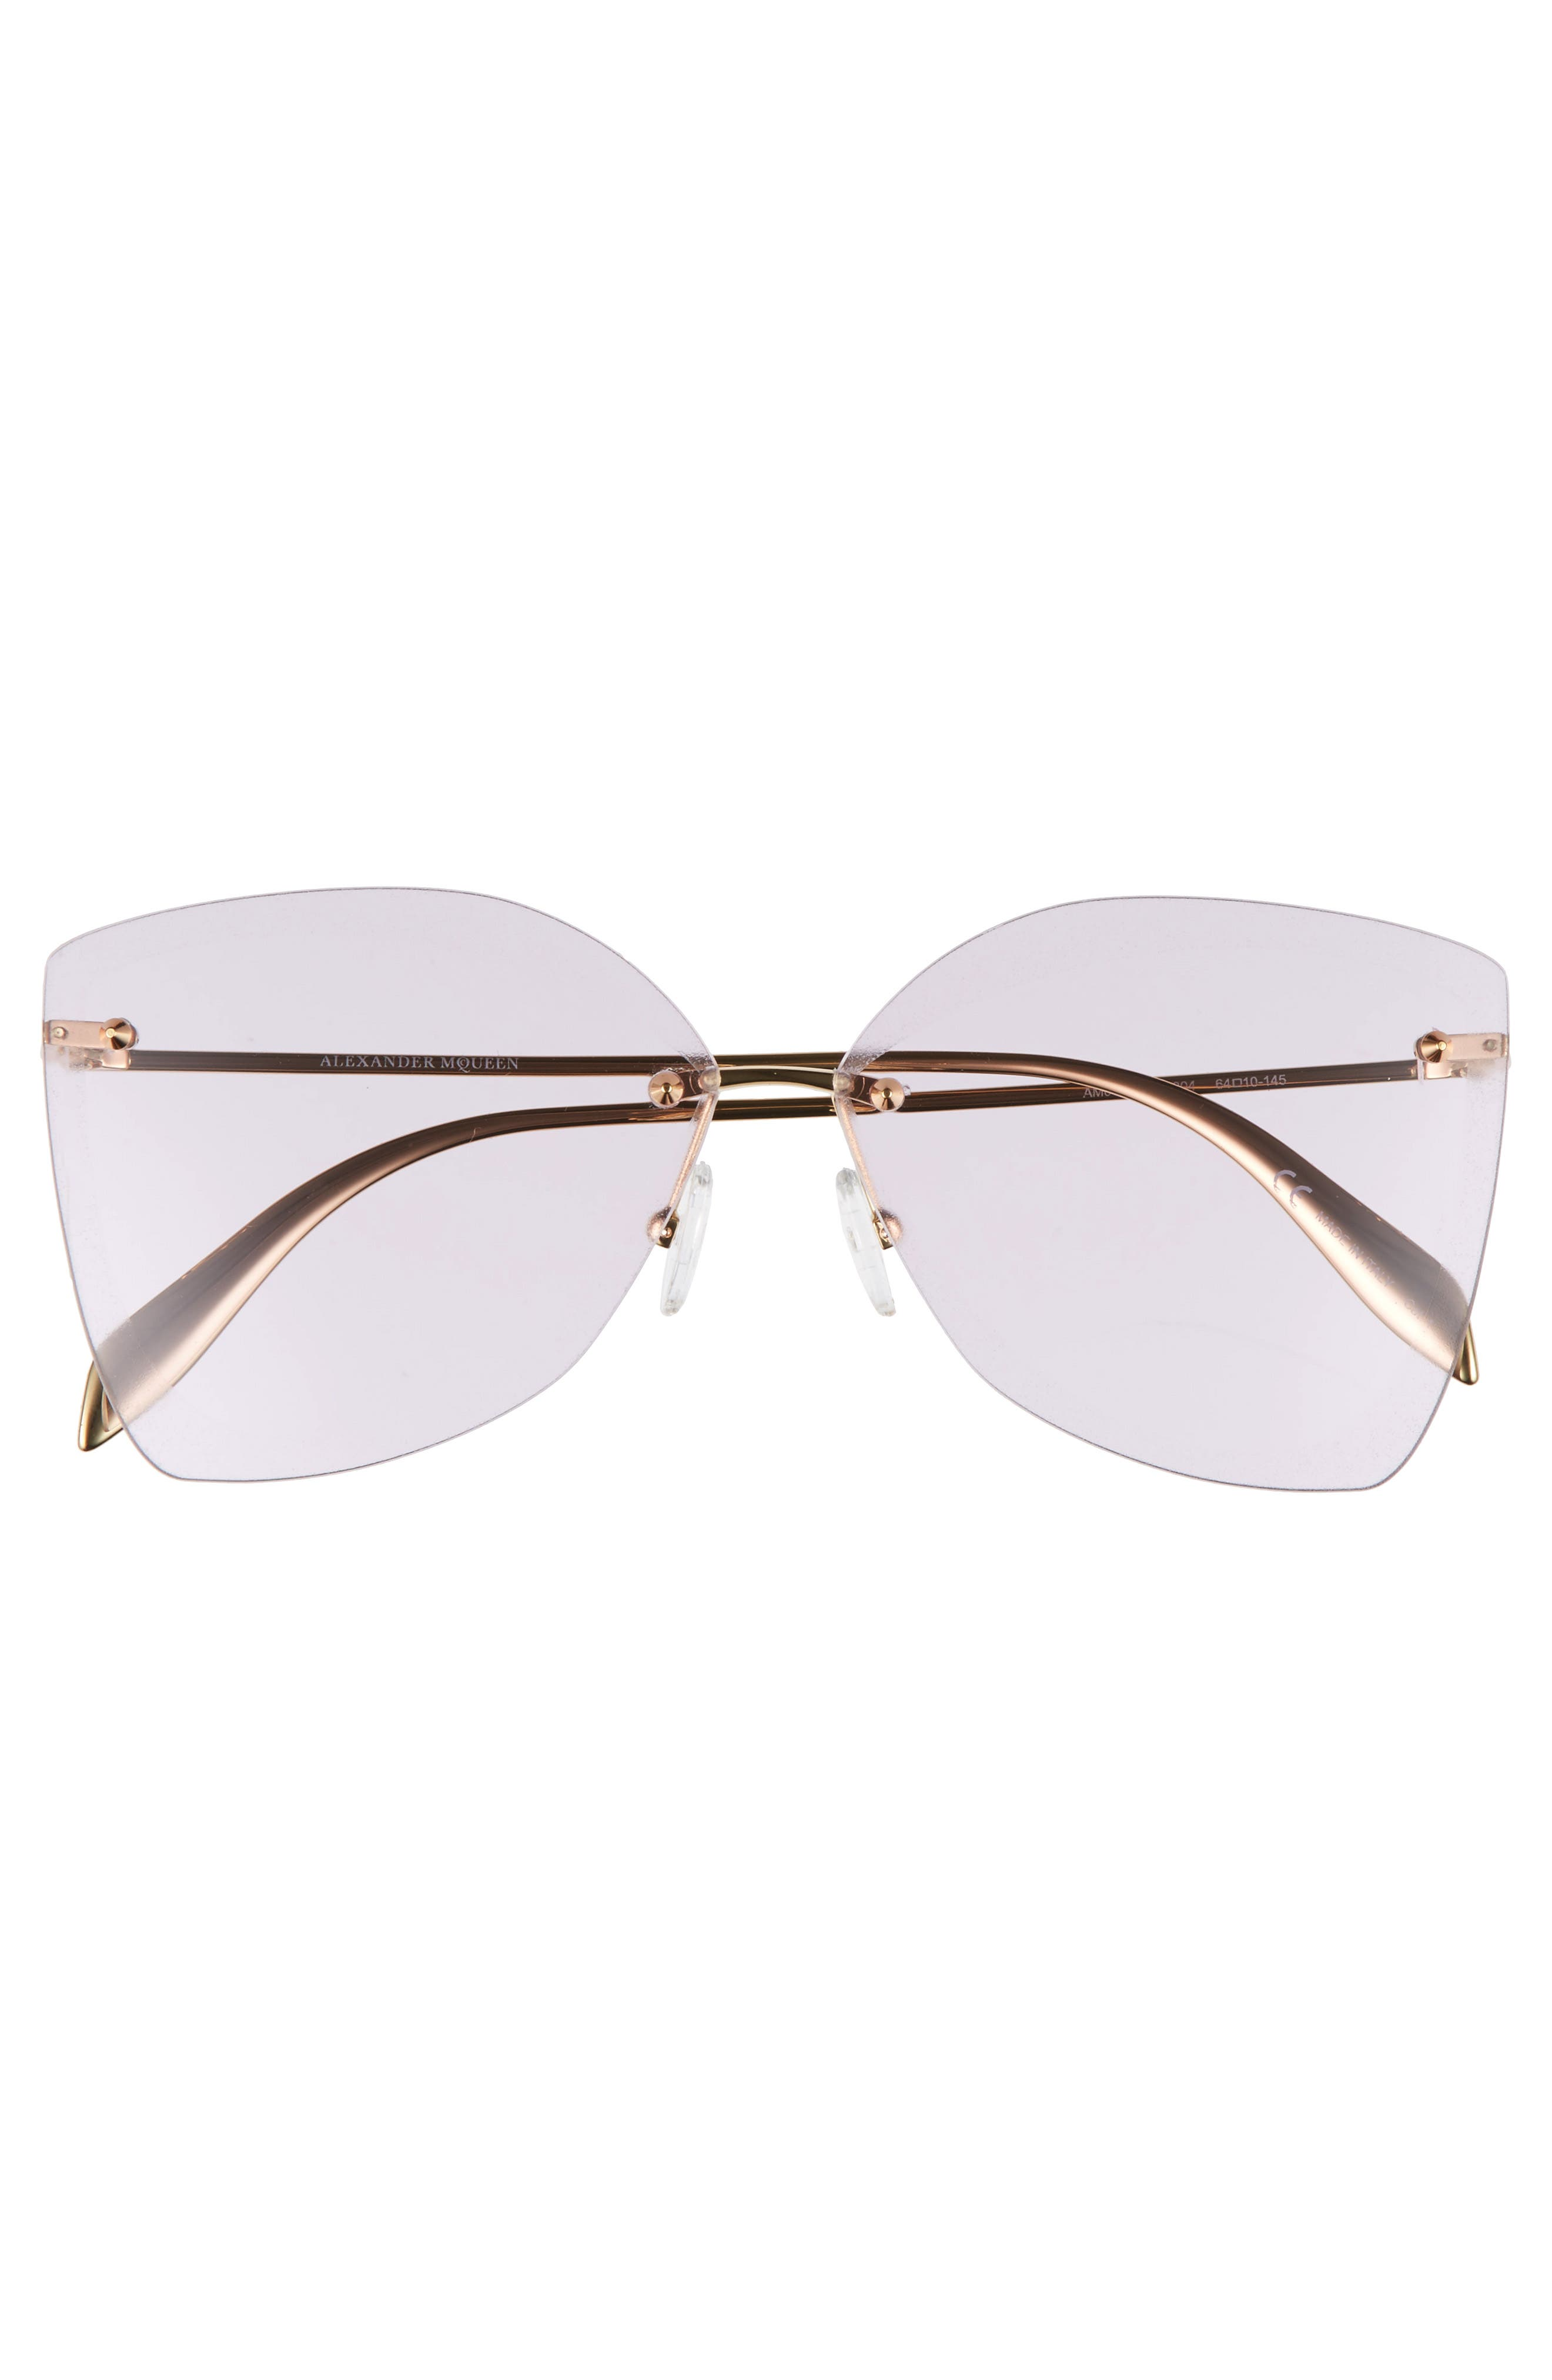 ALEXANDER MCQUEEN, 64mm Oversize Rimless Sunglasses, Alternate thumbnail 3, color, GOLD